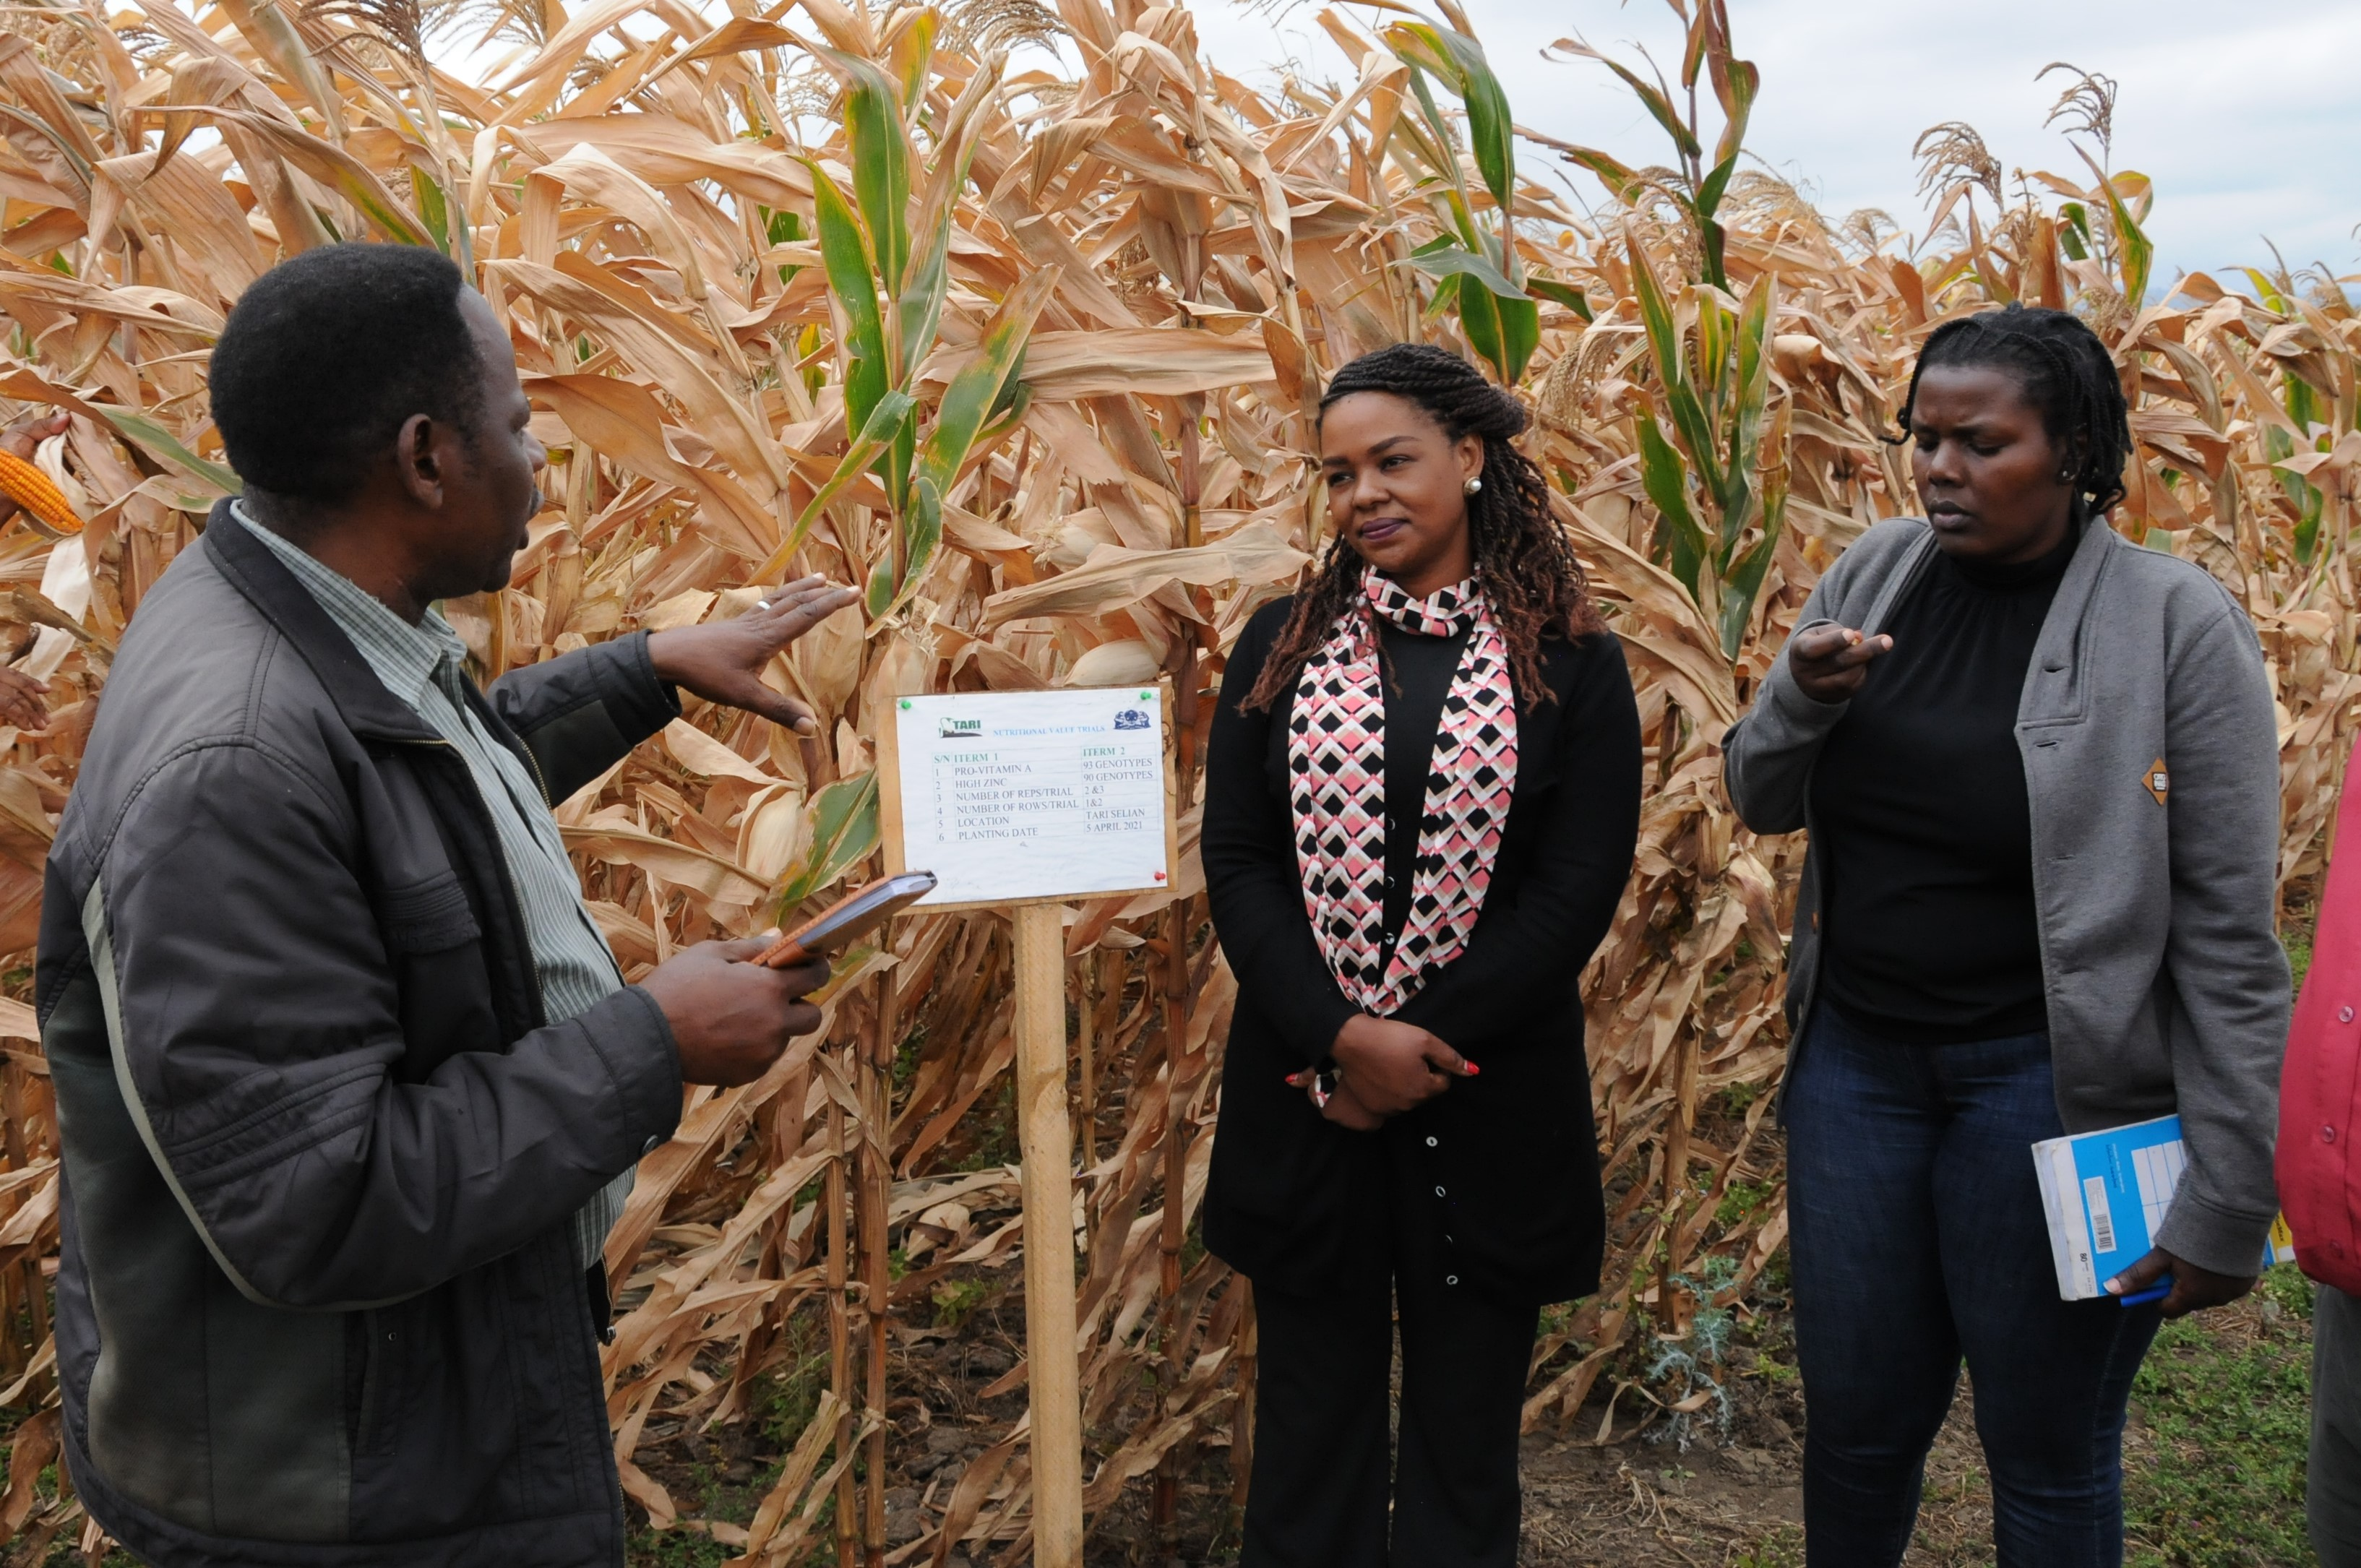 Mr. Zablon Msengi-head of the Maize Program-TARI Selian gives detailed information on Pro-Vitamin and ZInc rich maize evaluation to Ms. Ritha Tarimo-Country Director (left) and  Ms. Neema Mollel( right) from Belgium funded organization-TRIAS